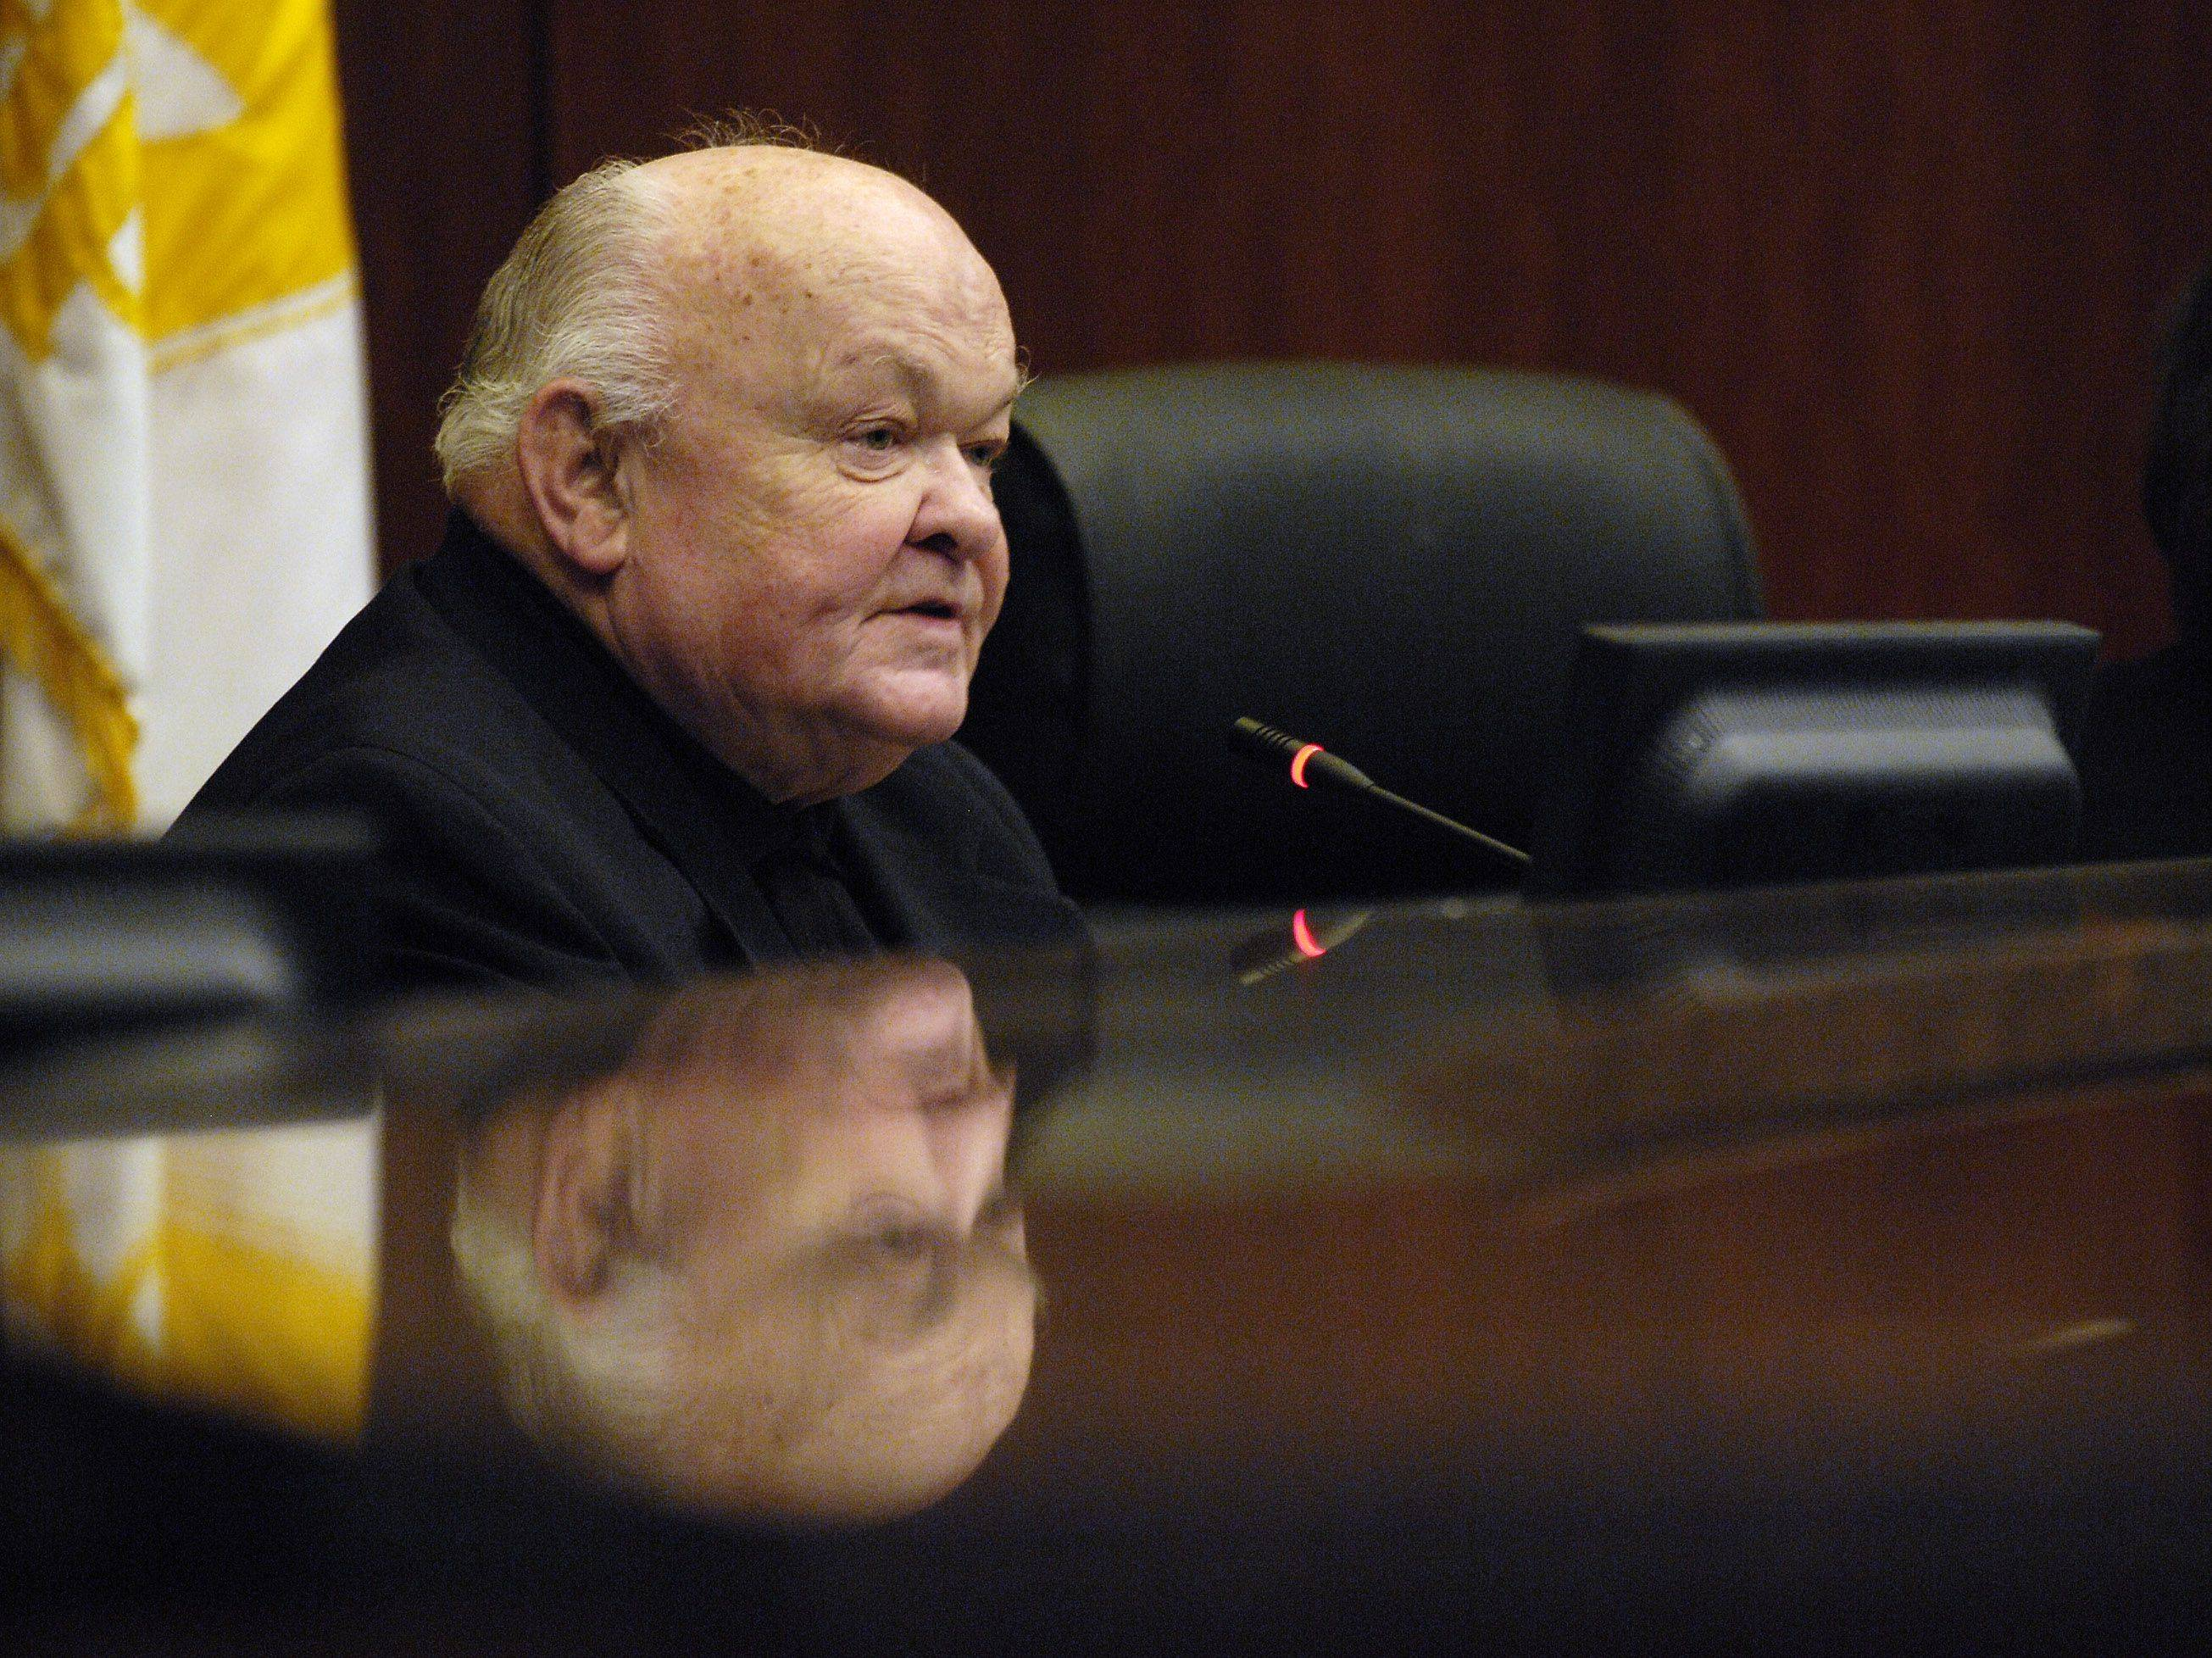 Naperville Mayor George Pradel on Tuesday presides over a hearing of Naperville's Electoral Board for the proposed smart meters, to monitor electrical use in the city.